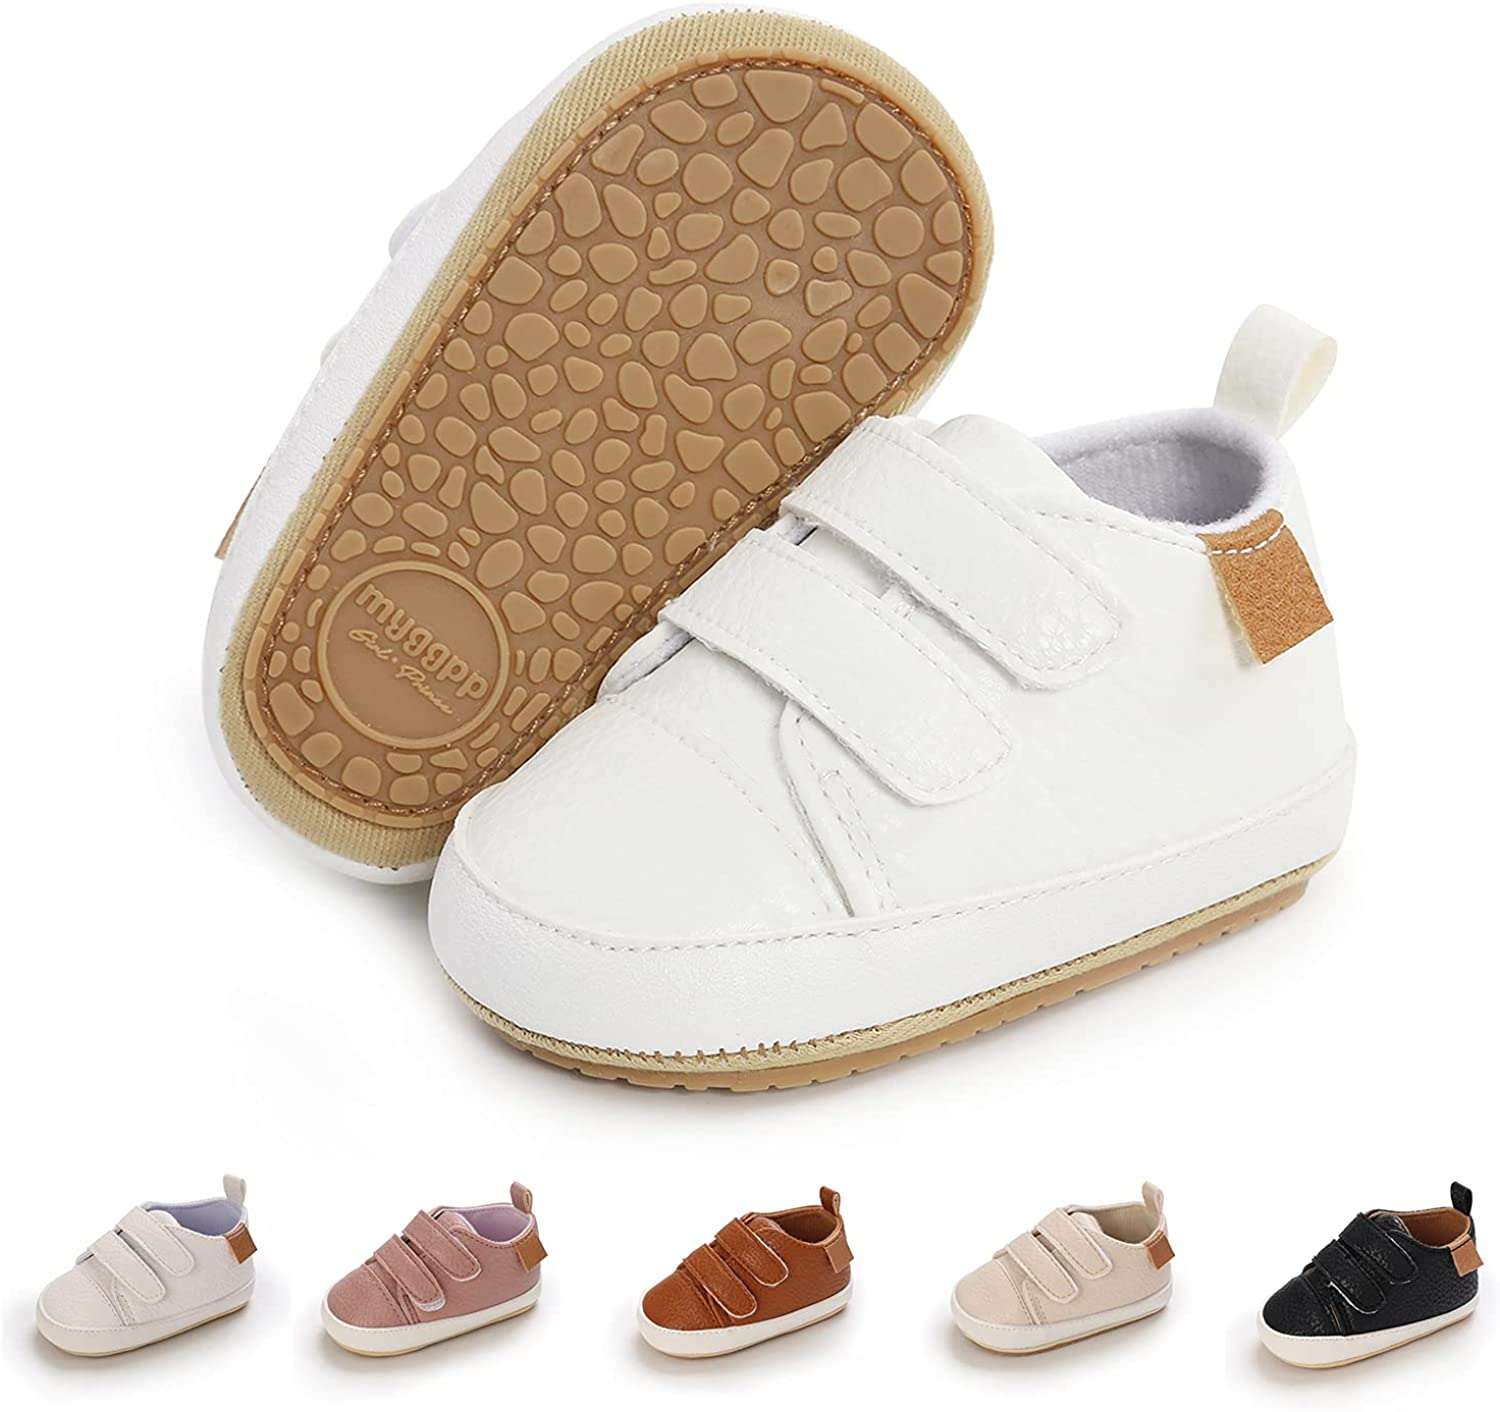 BEBARFER Toddler Baby Boys Girls Shoes Infant Moccasins Anti-Slip Sole Newborn Oxford Loafers Sneakers Wedding Uniform Dress Shoes First Walking Crib Shoes Baby Boy Dress Shoes